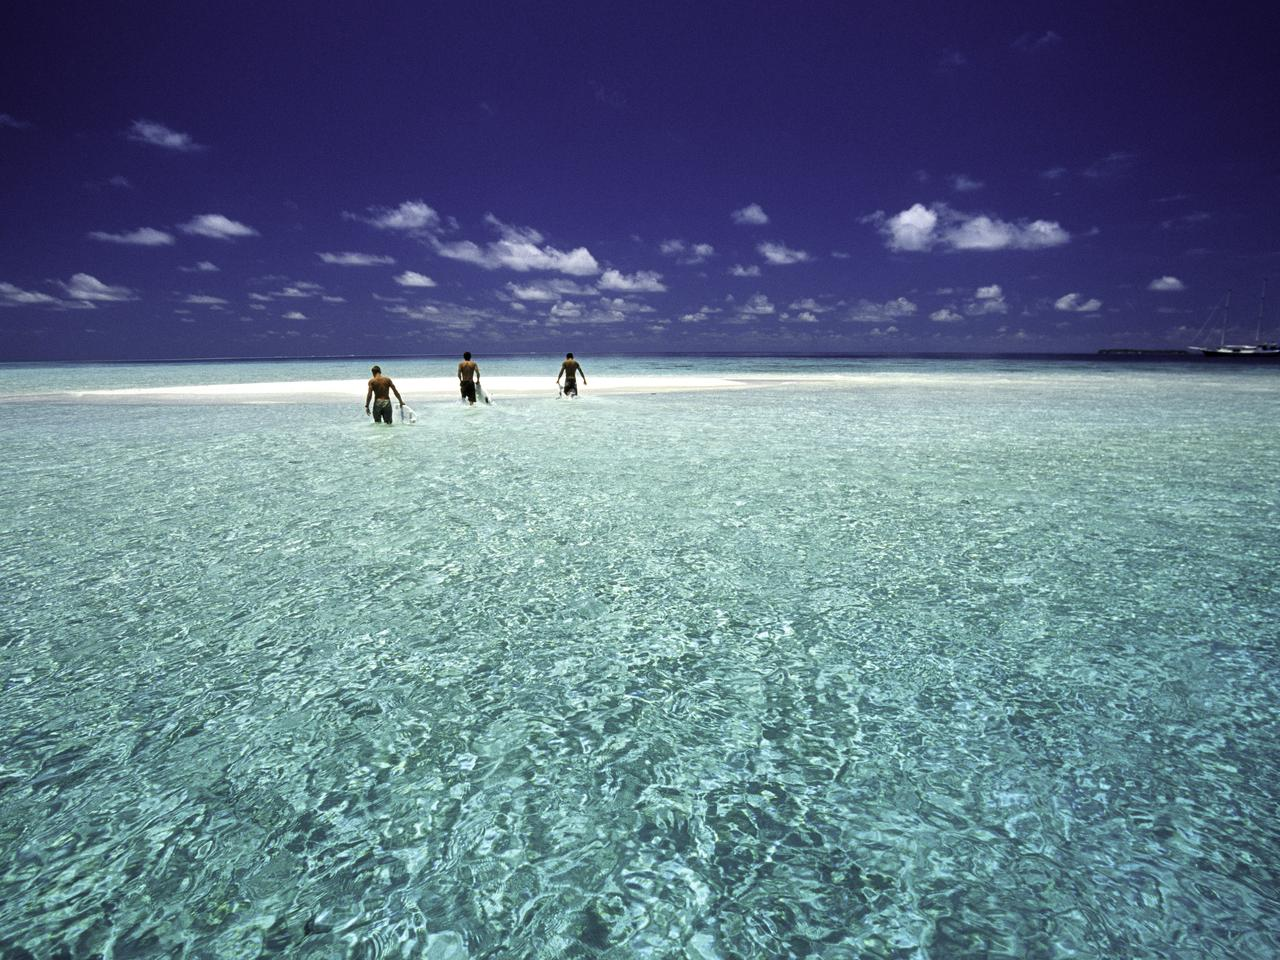 Maldives, North MalA Atoll, surfers. Maldives in the Indian Ocean is a popular destination for surfing.